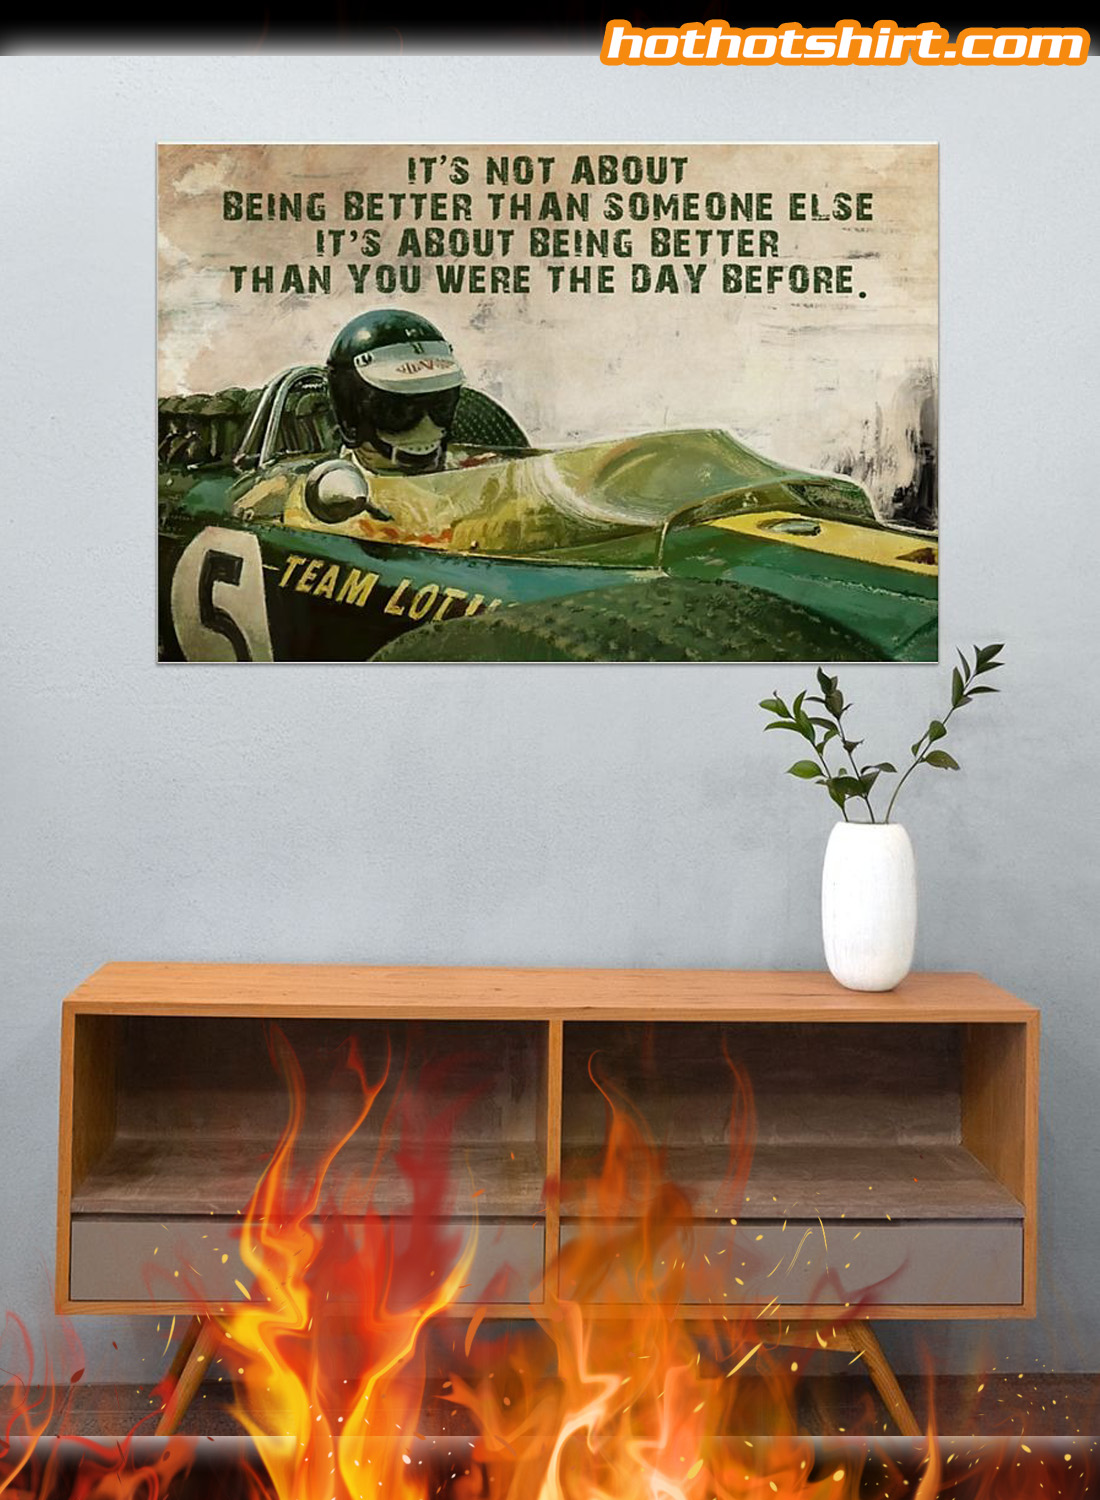 Forza Motorsport Racer It's not about being better than someone else poster 3